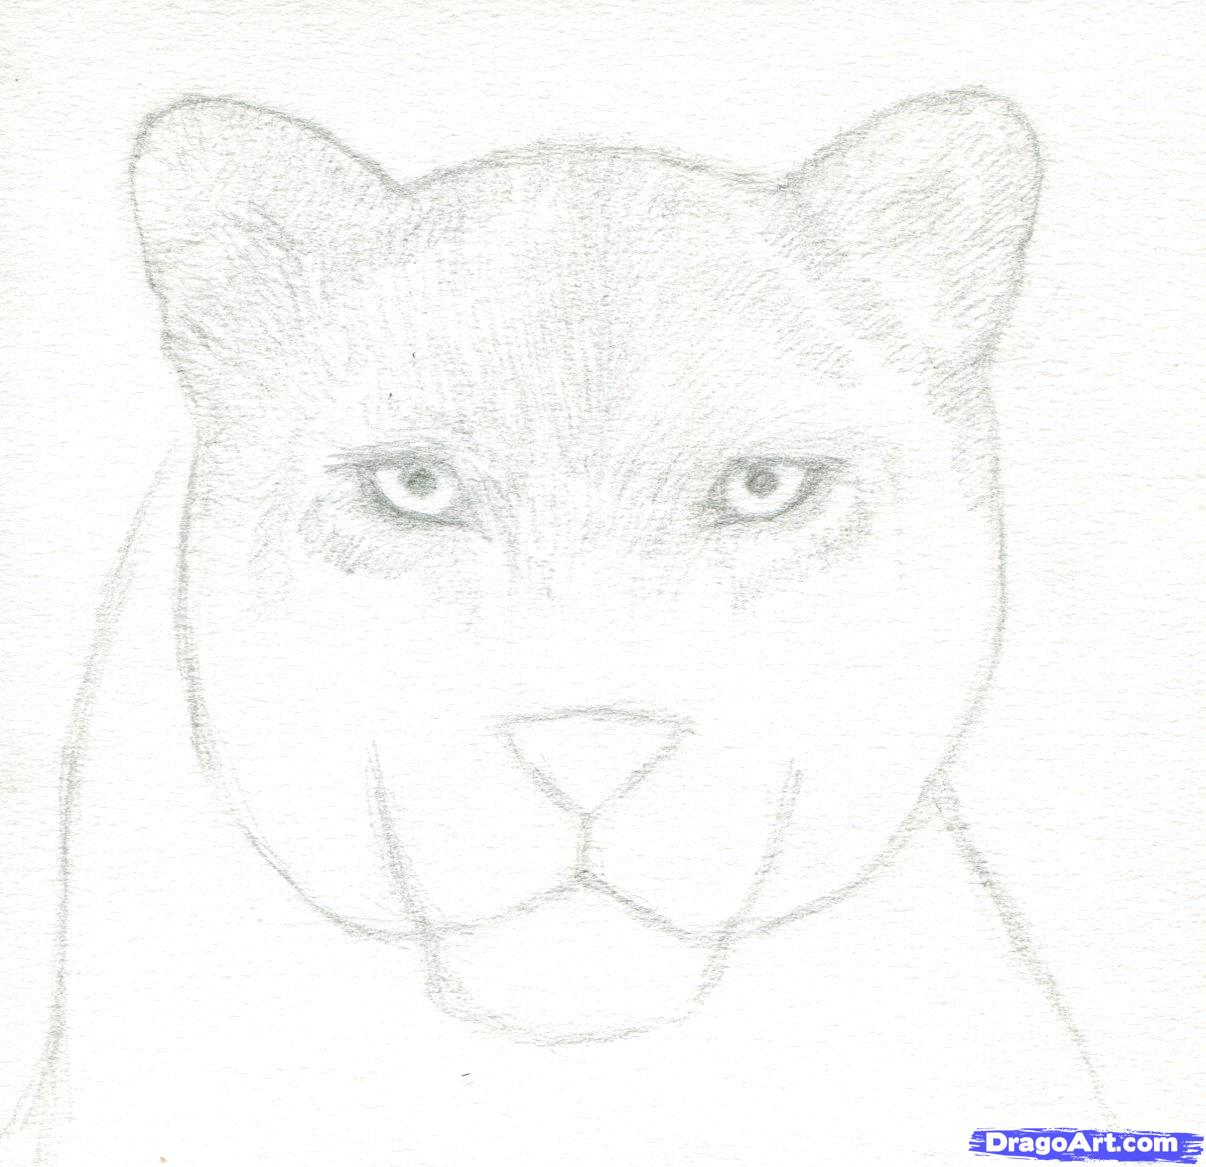 Drawn panther realistic Drawing Panther draw how Panther